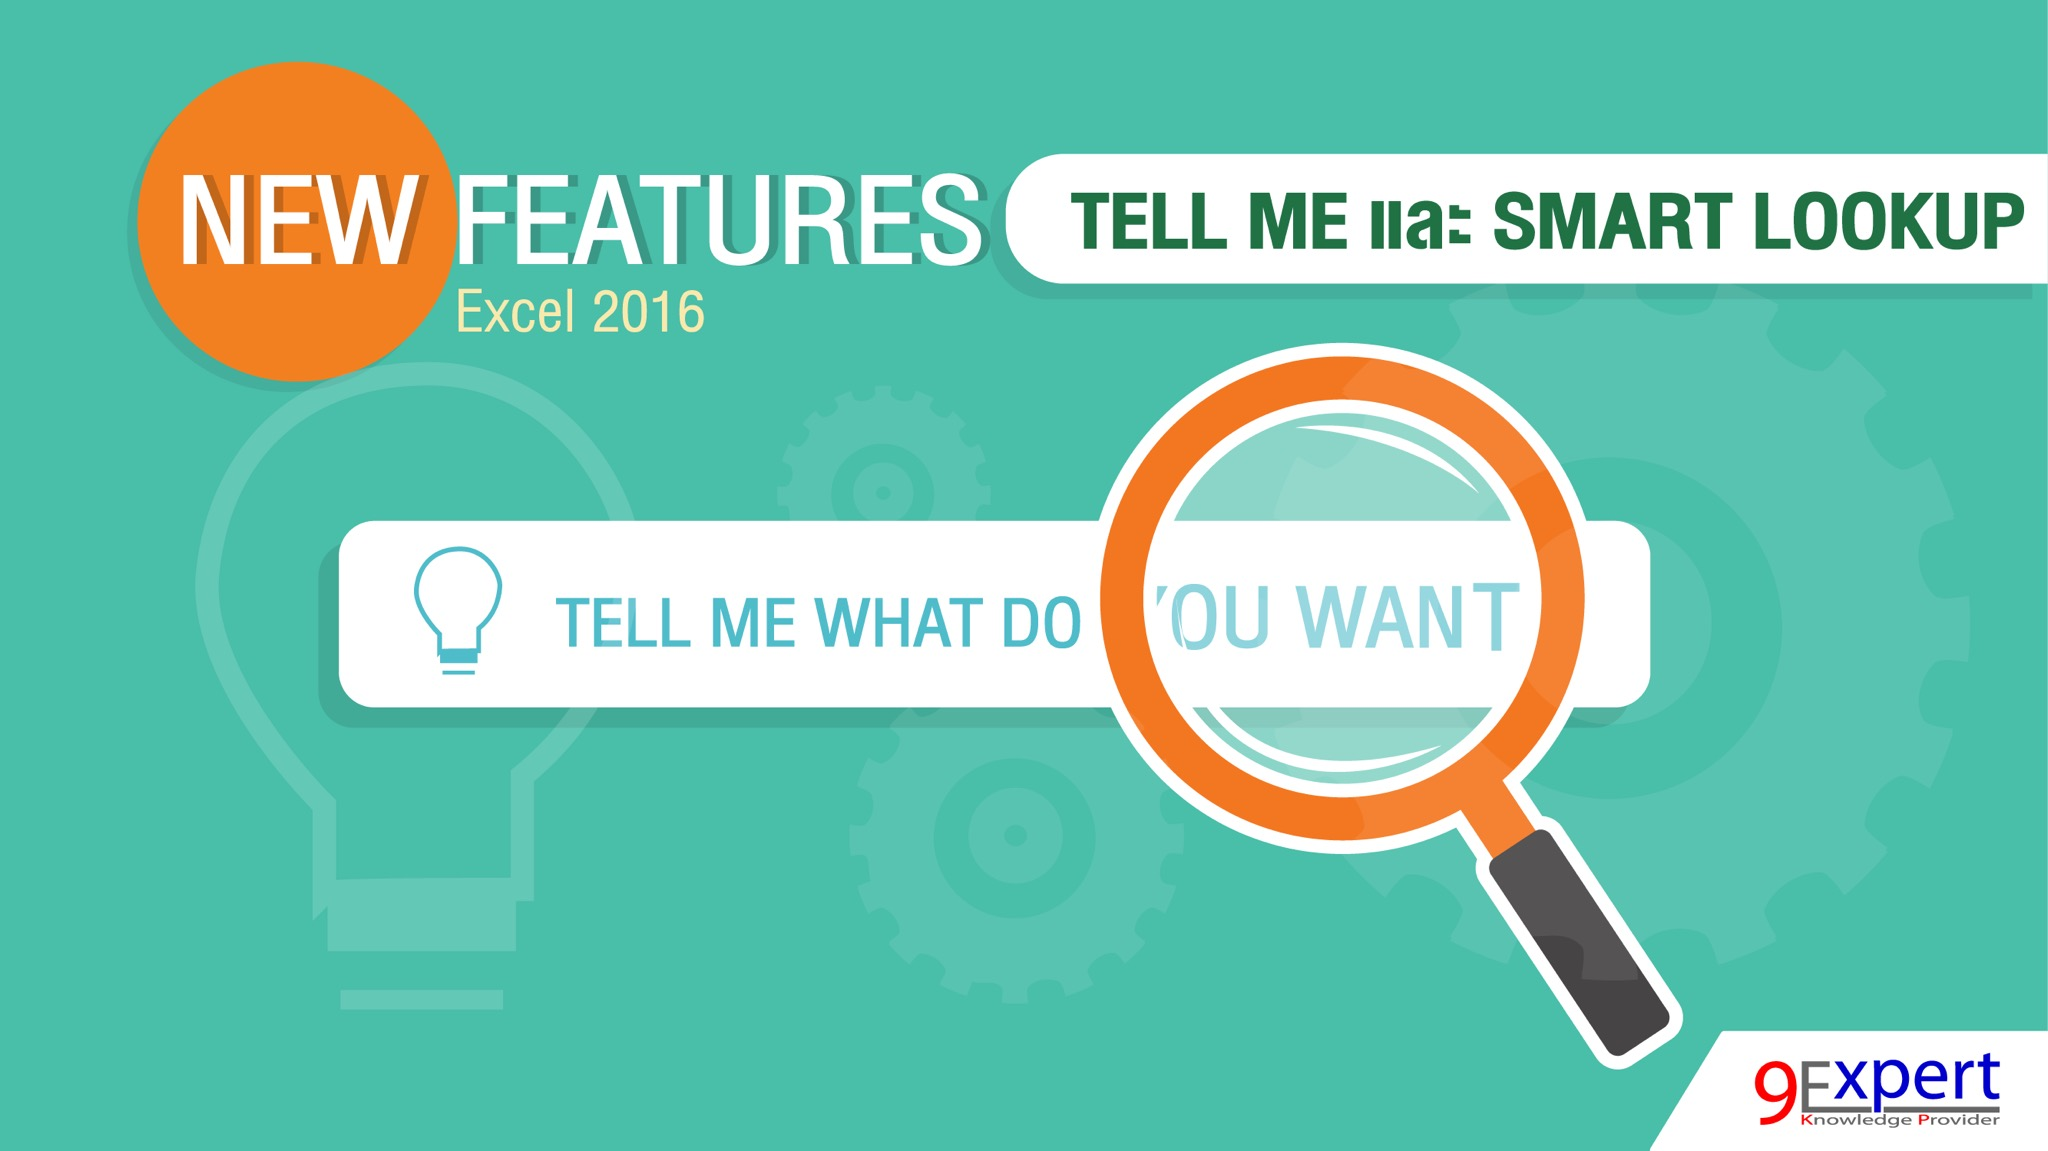 New Features Tell Me และ Smart Lookup